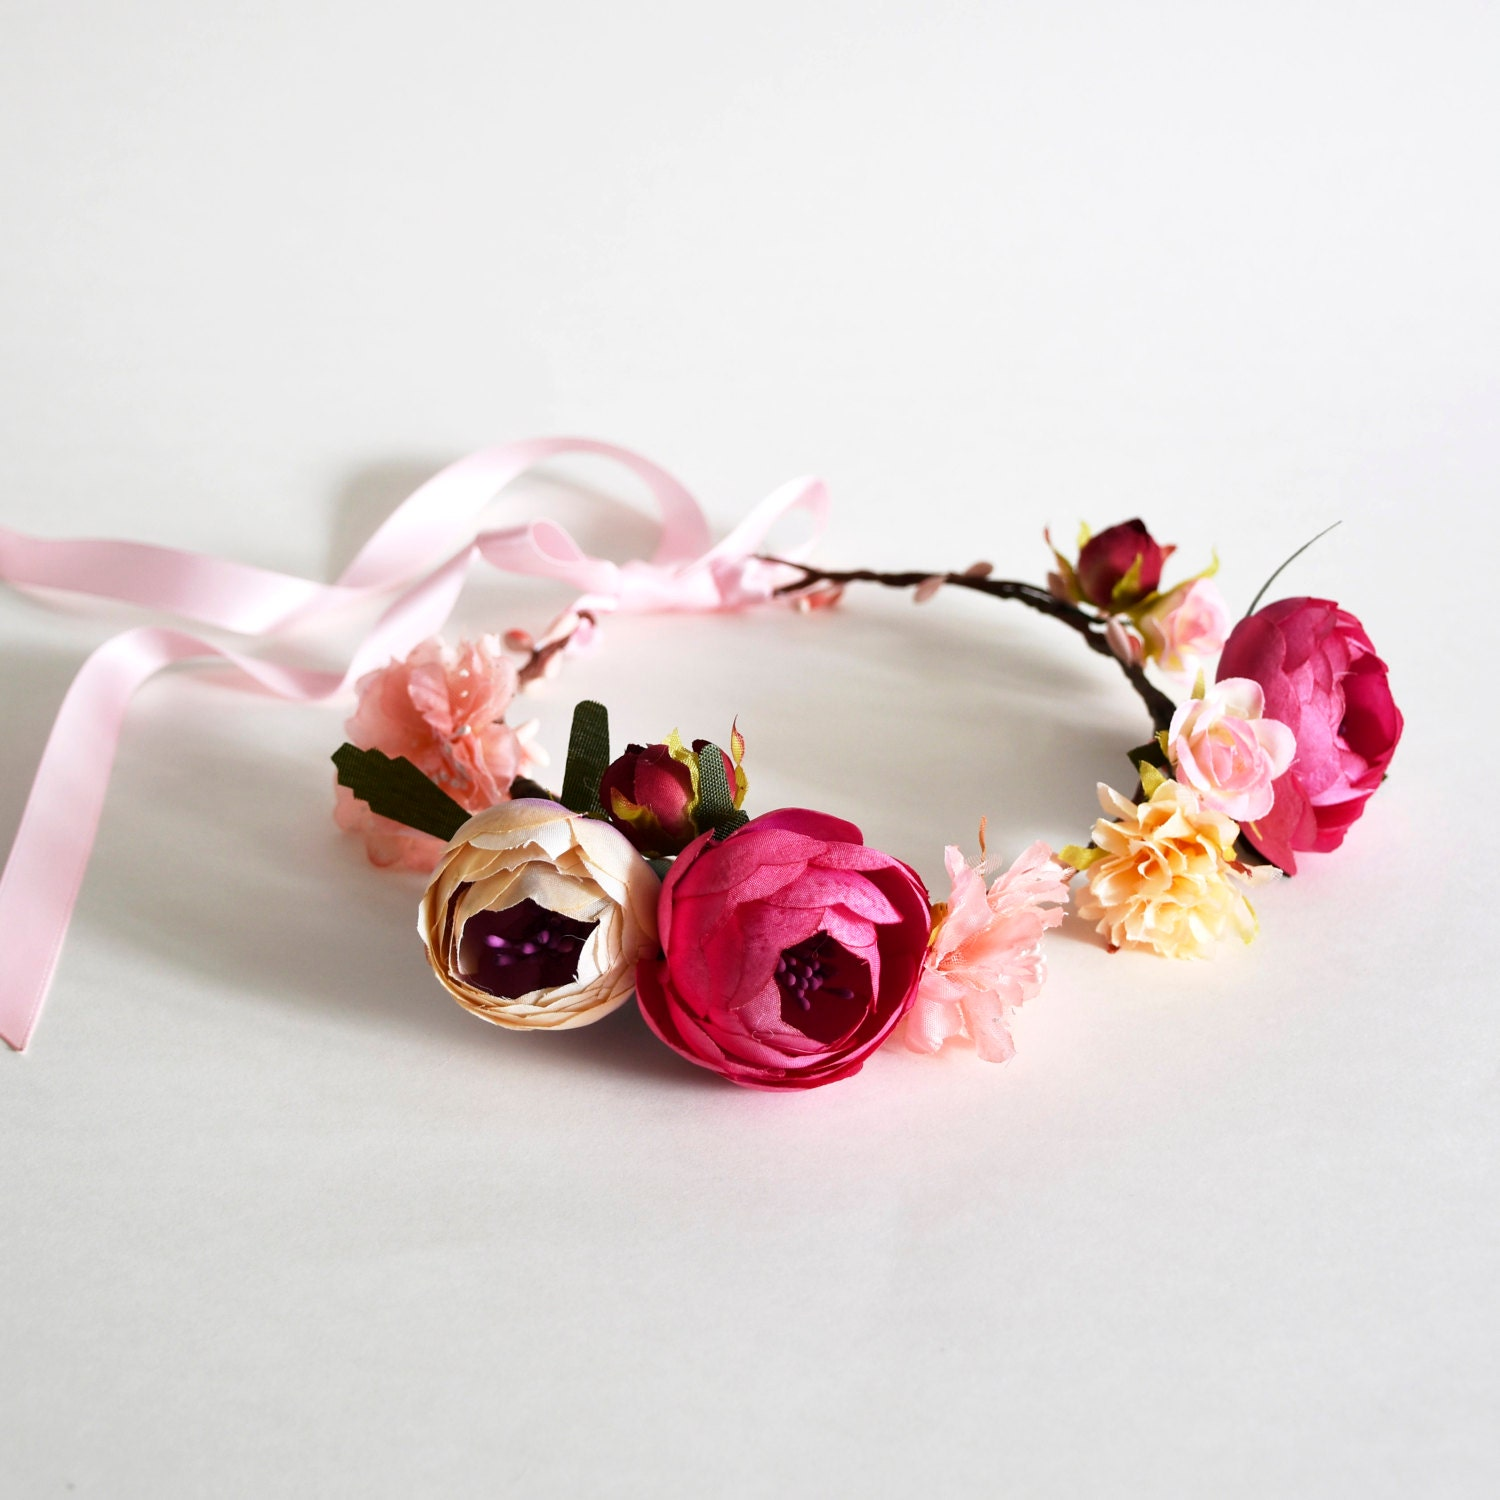 Handmade Flower Crown Floral Crown Wedding Flower Crown Etsy